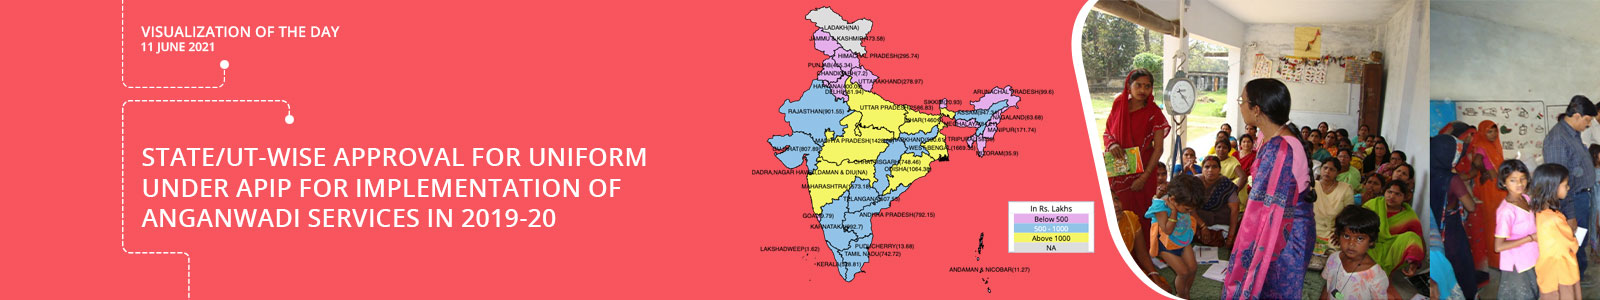 State/UT-wise Approval for Uniform under APIP for Implementation of Anganwadi Services in 2019-20